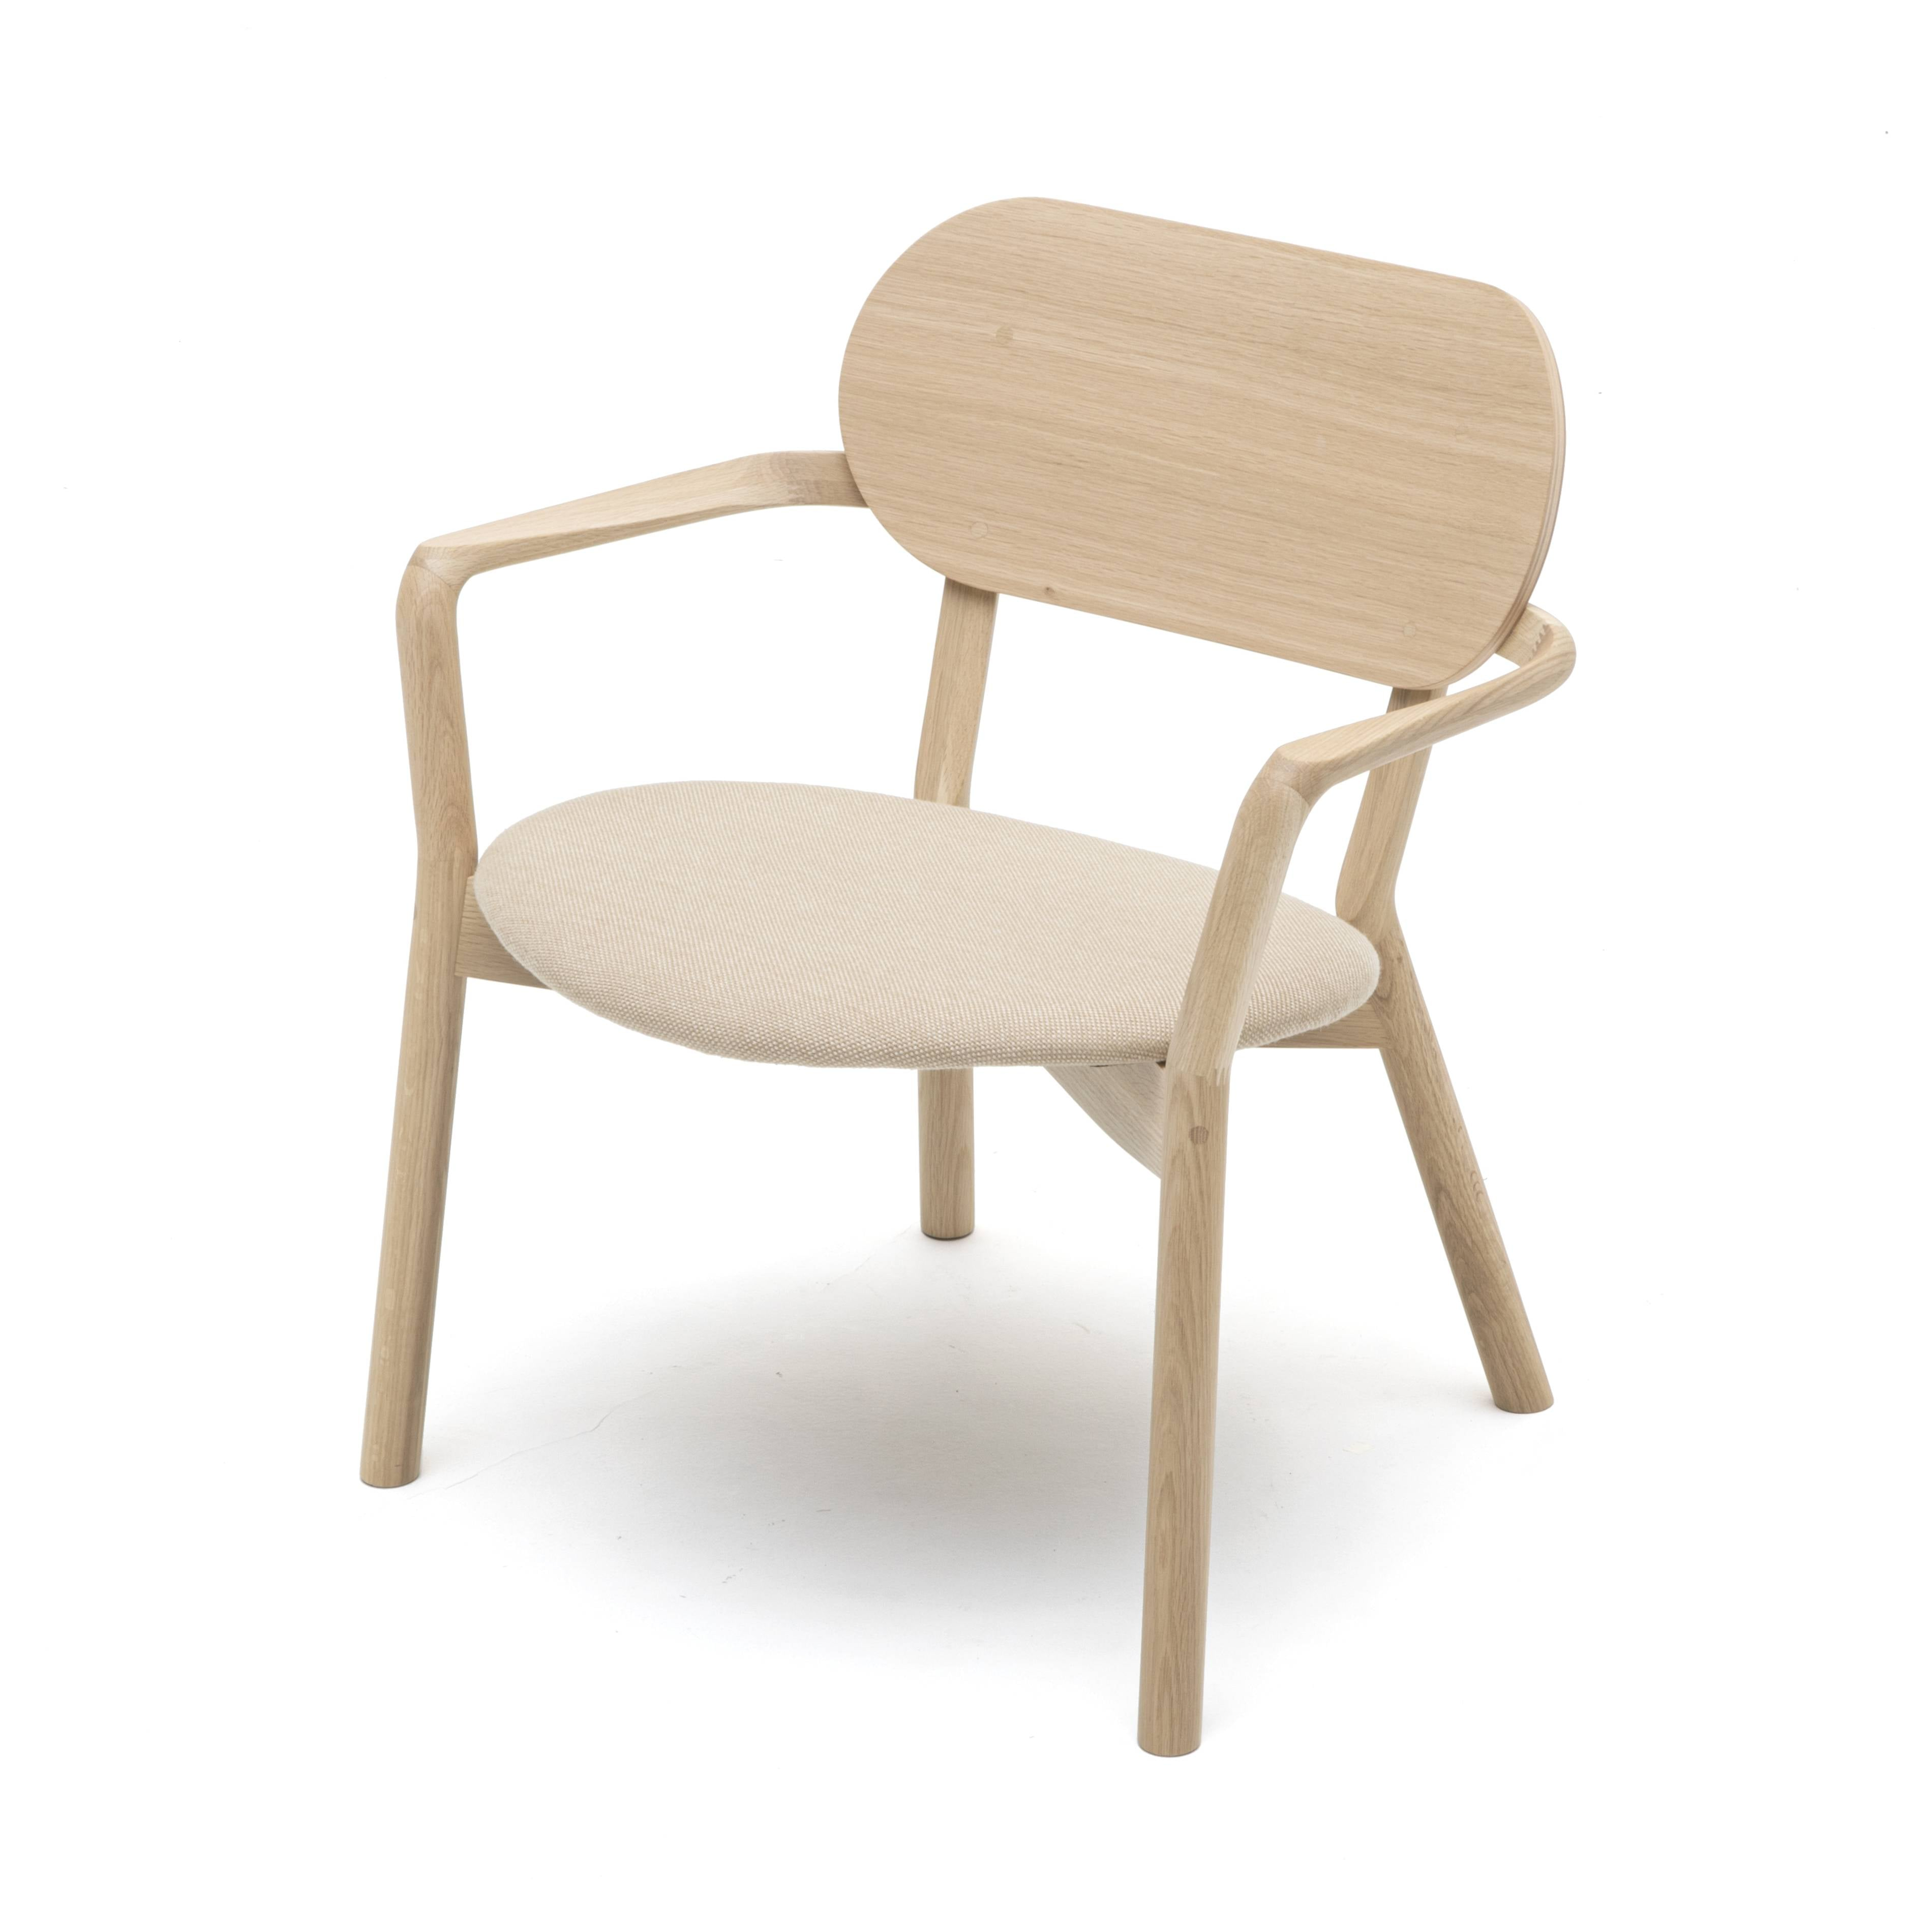 Castor Low Chair: Natural Oak + With Pad